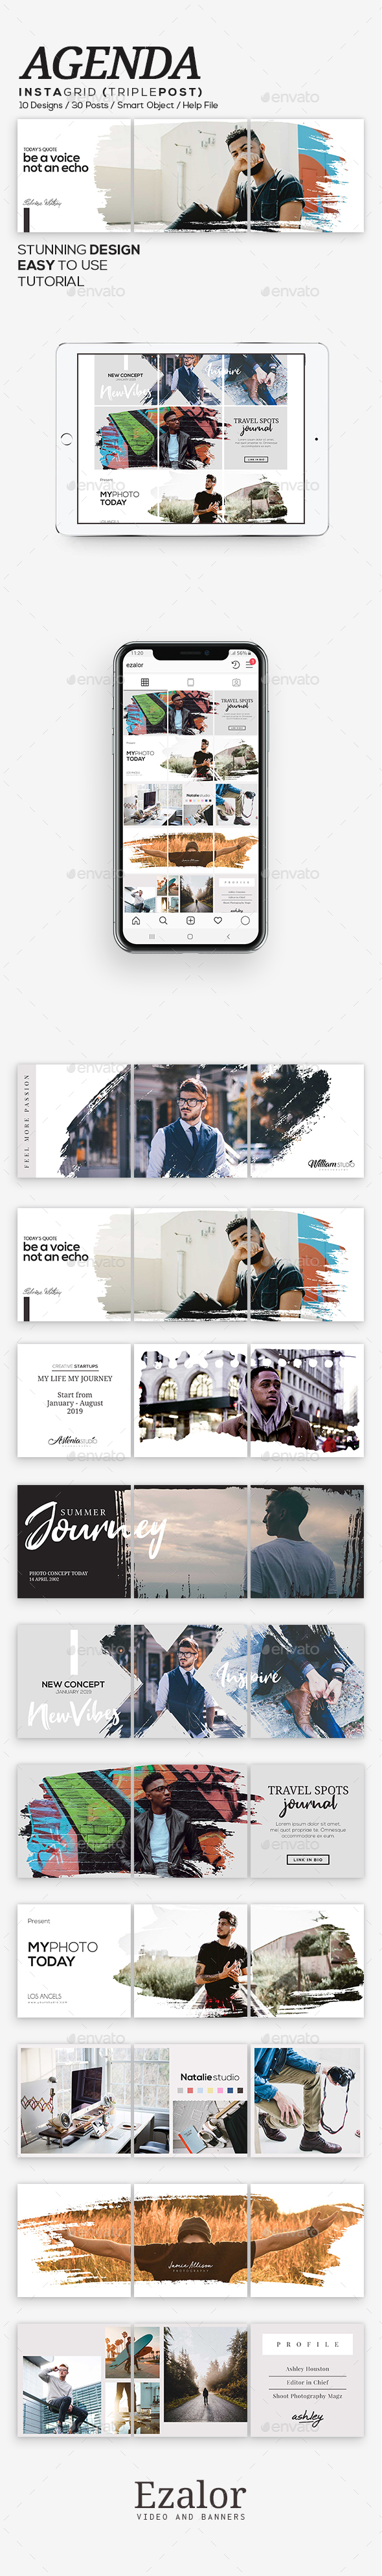 Grid Graphics, Designs & Templates from GraphicRiver